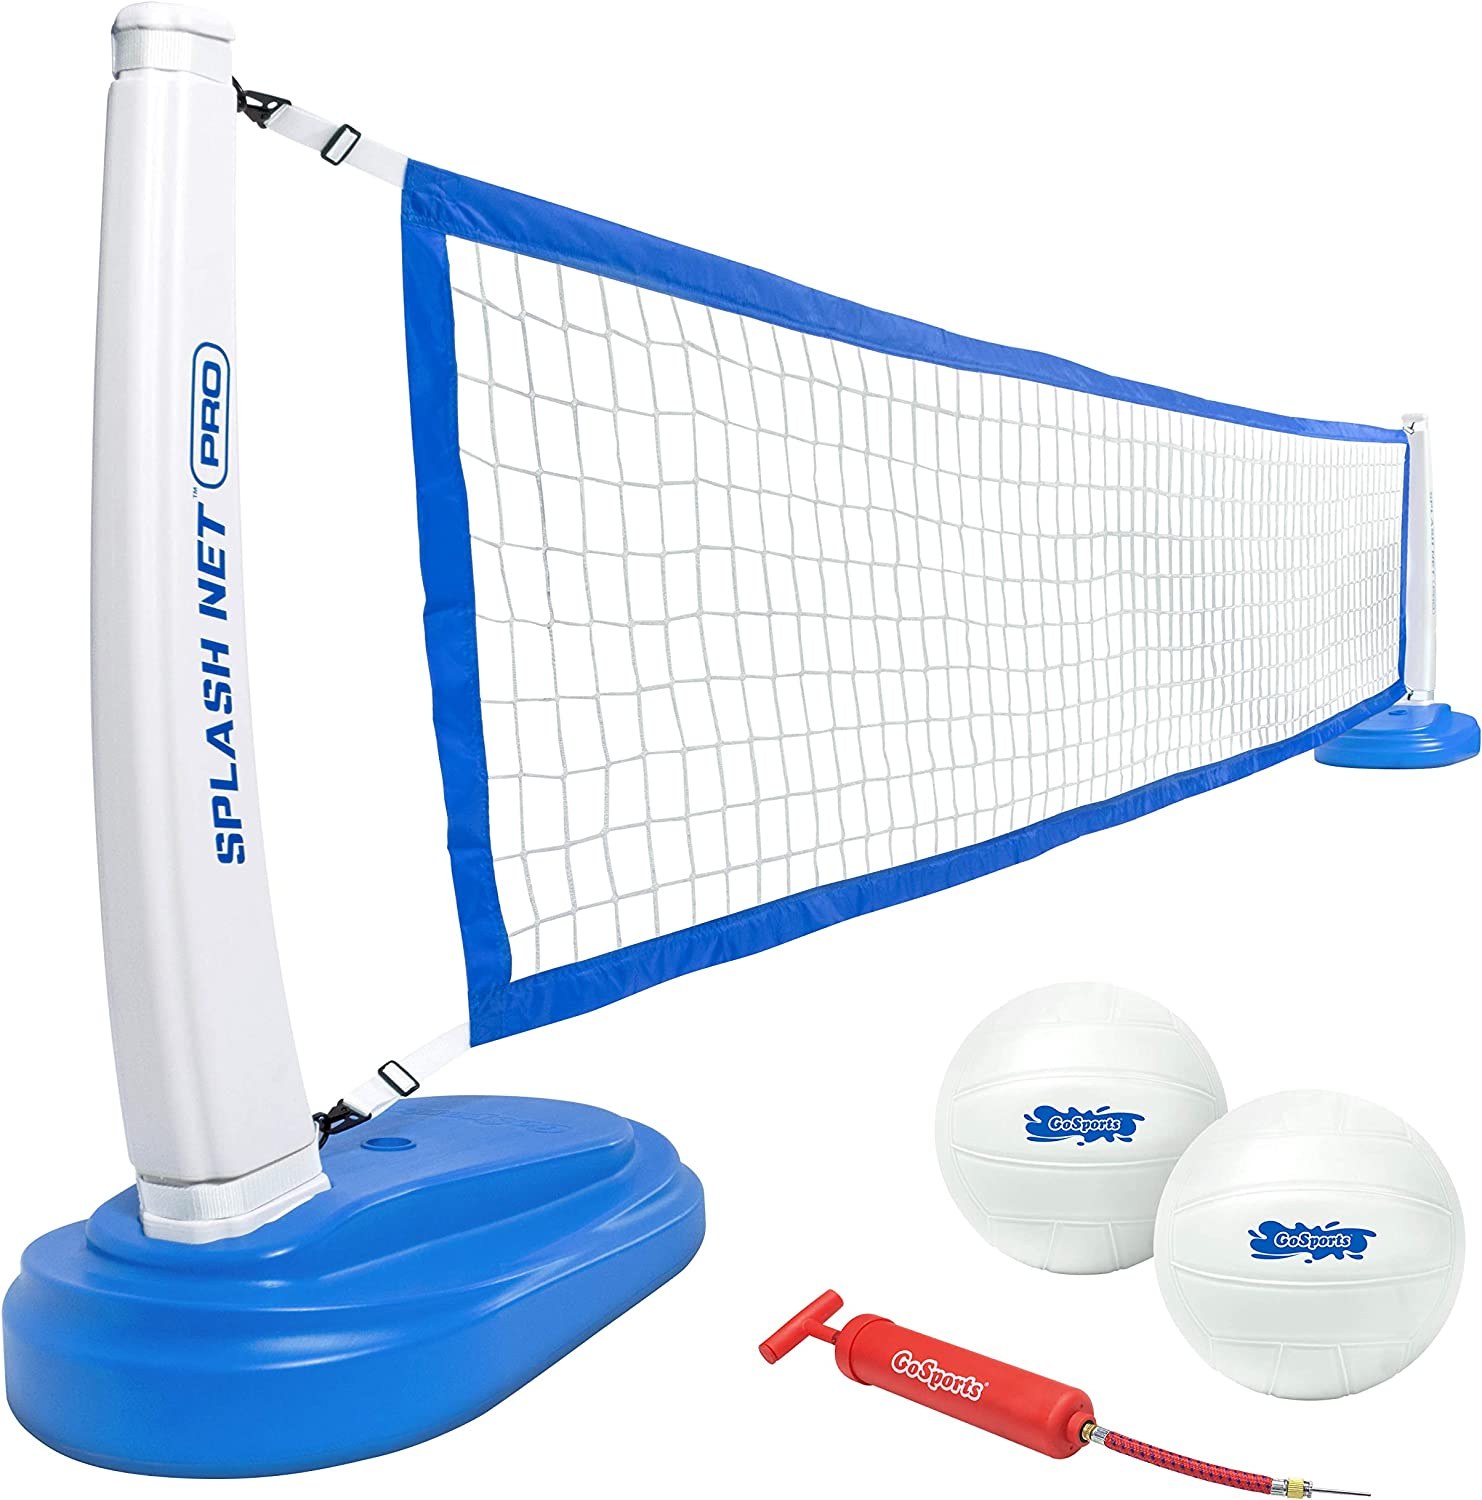 GoSports Splash Net PRO New color Pool Cash special price Vol Water Volleyball 2 Includes